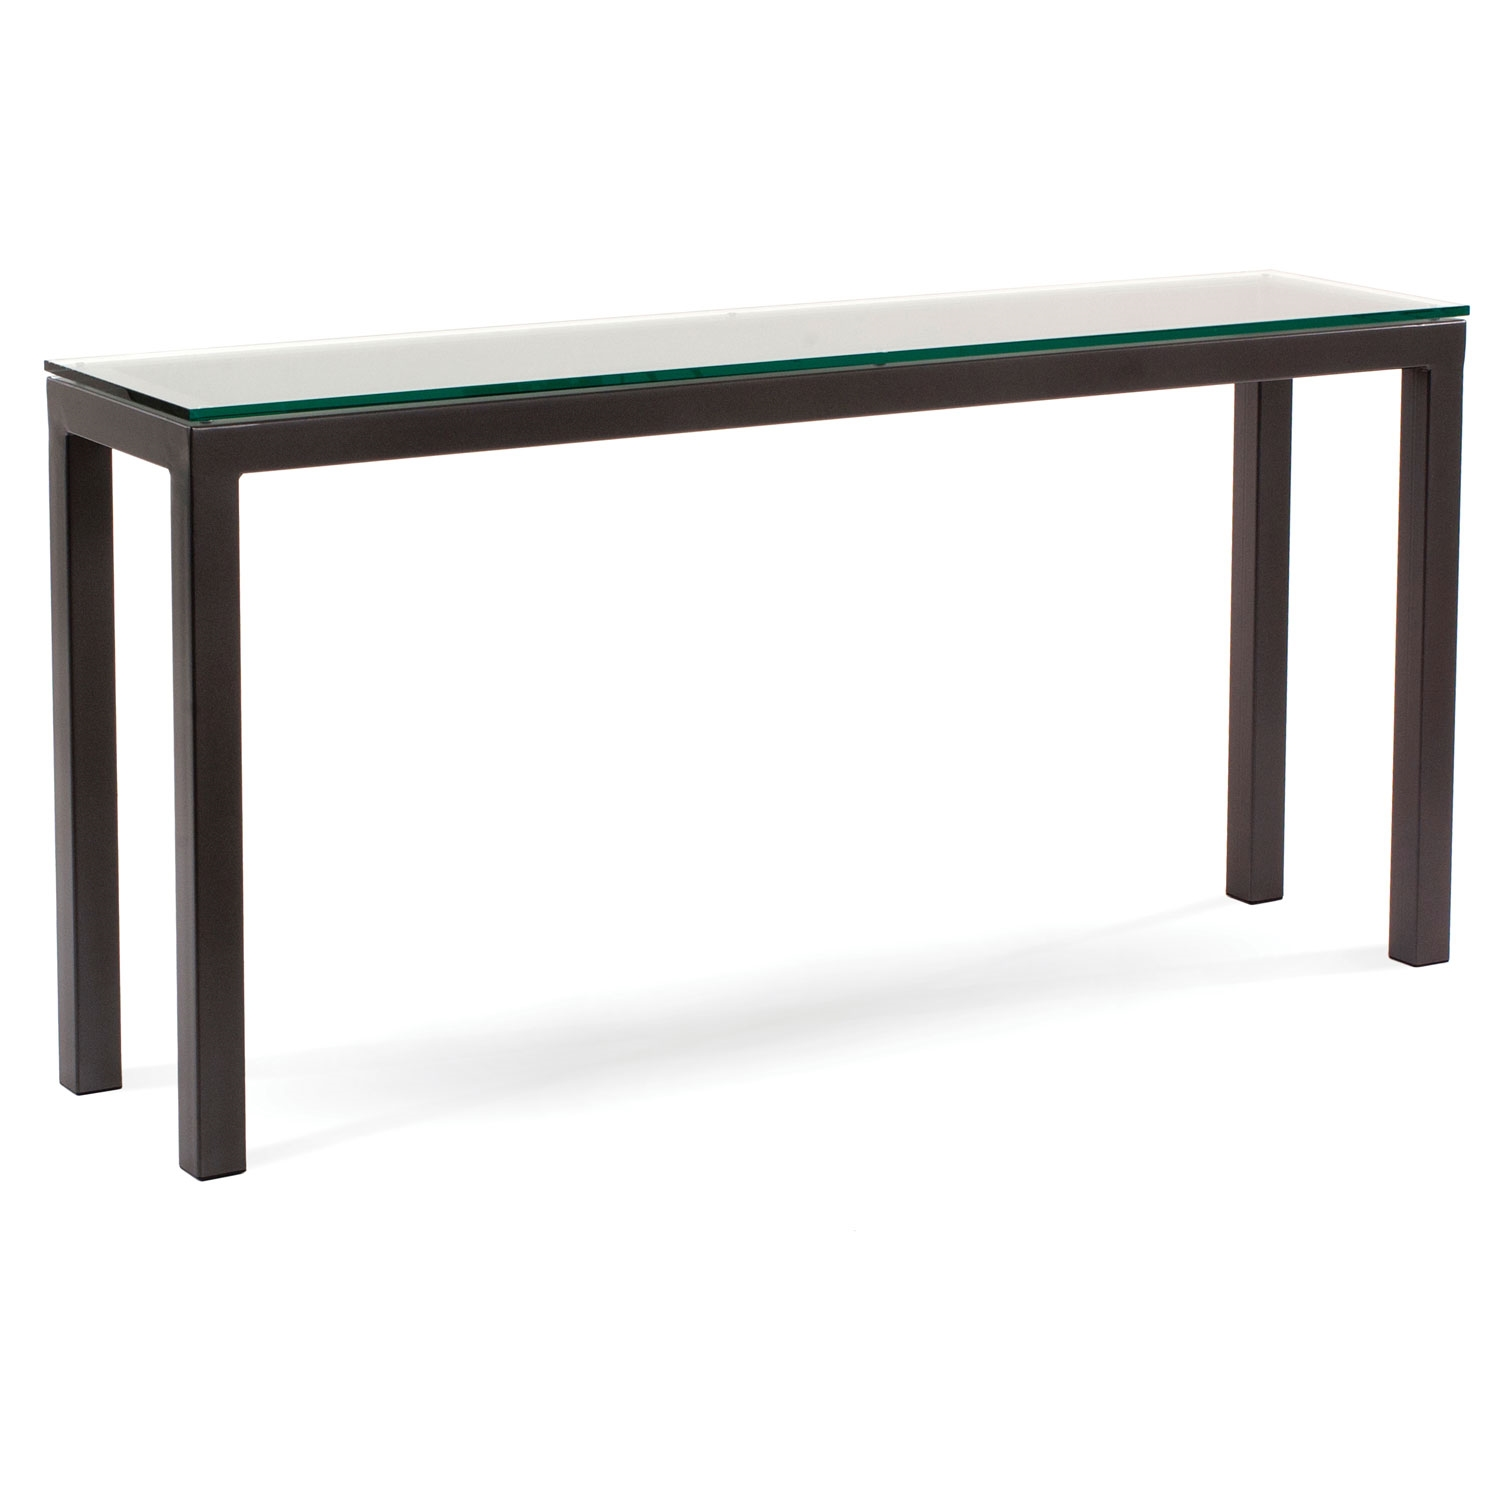 60 in Contemporary Parsons Console Table